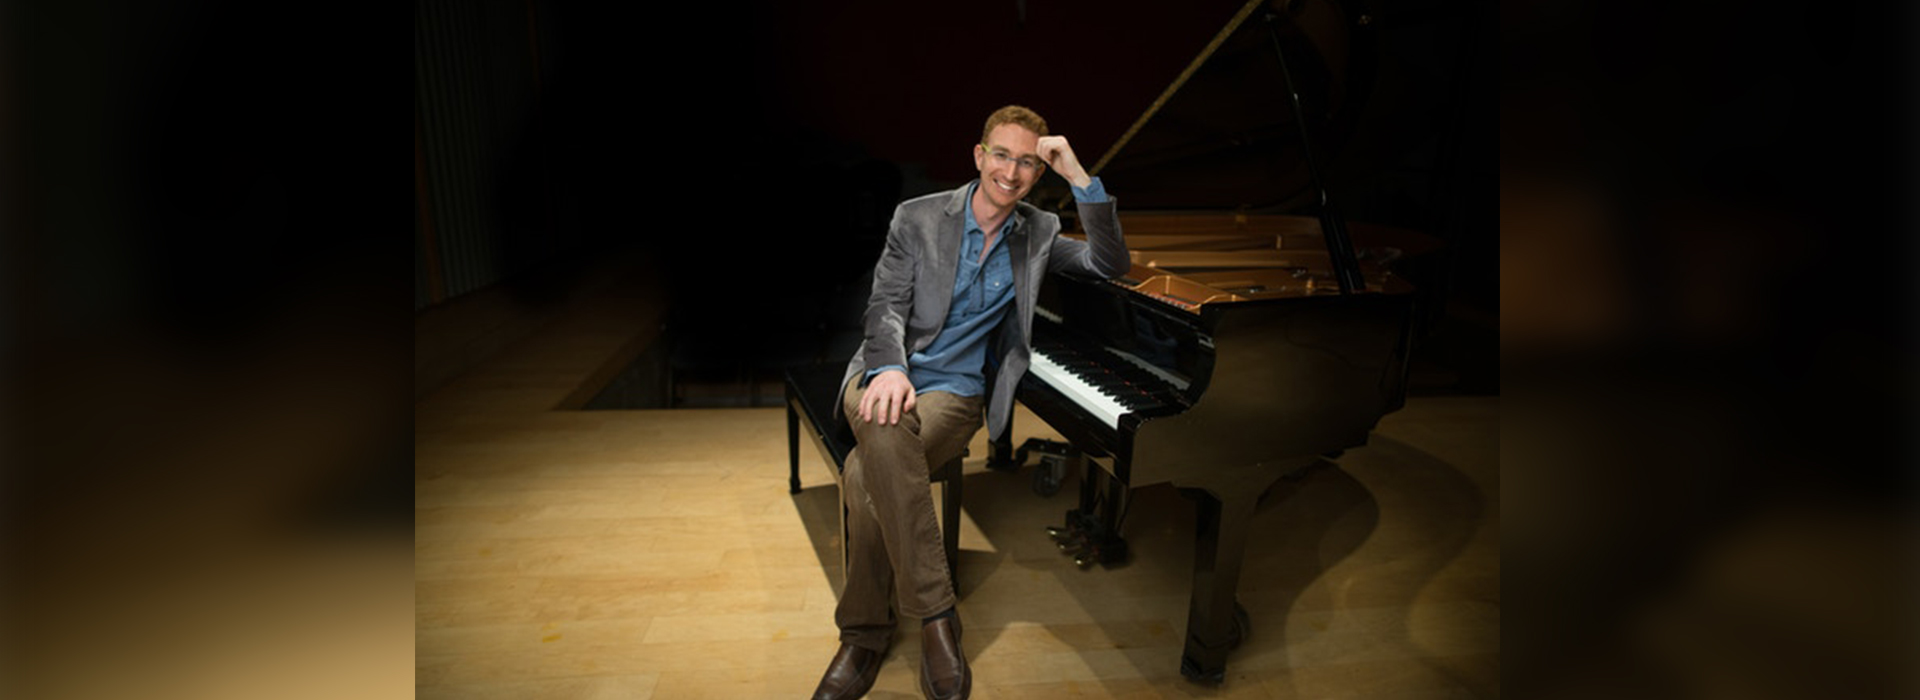 CSUSB Fall Music Showcase featuring pianist coming Oct. 16